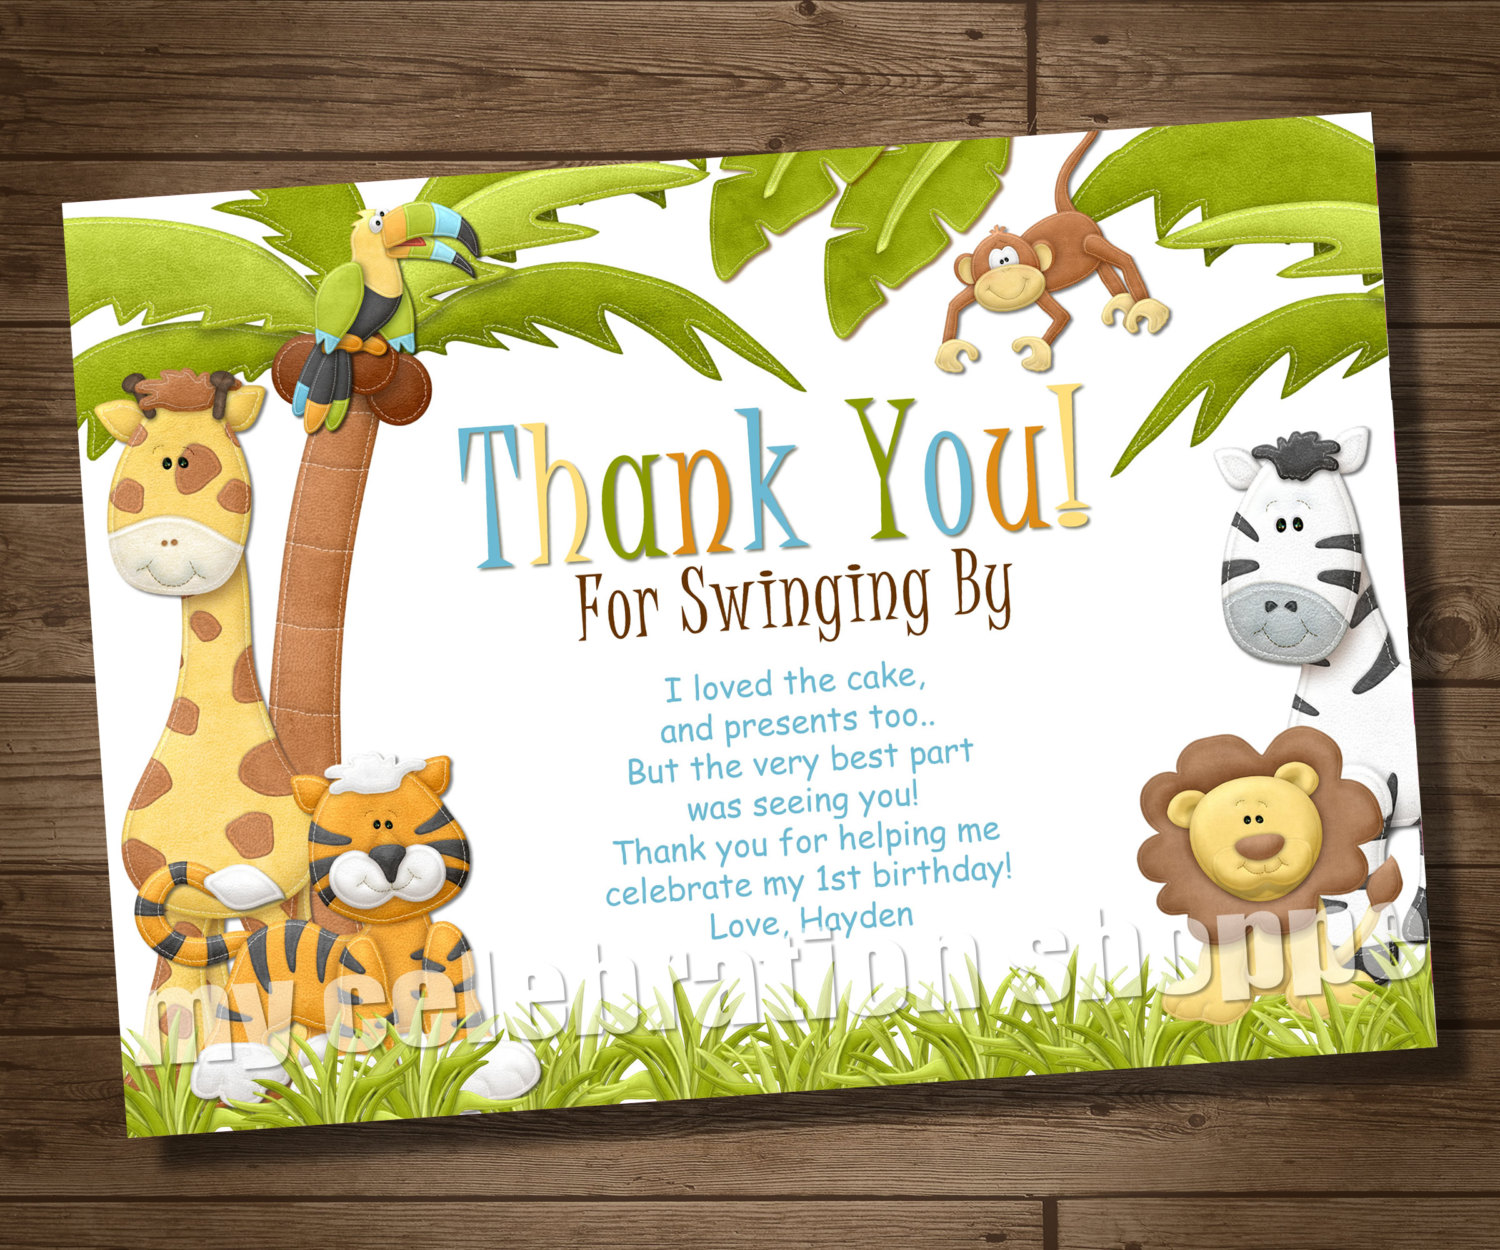 jungle theme birthday card ; i-loved-the-cake-and-present-too-but-the-very-best-part-was-seeing-you-thanks-for-helping-me-celebrate-my-birthday-jungle-thank-you-cards-love-hayden